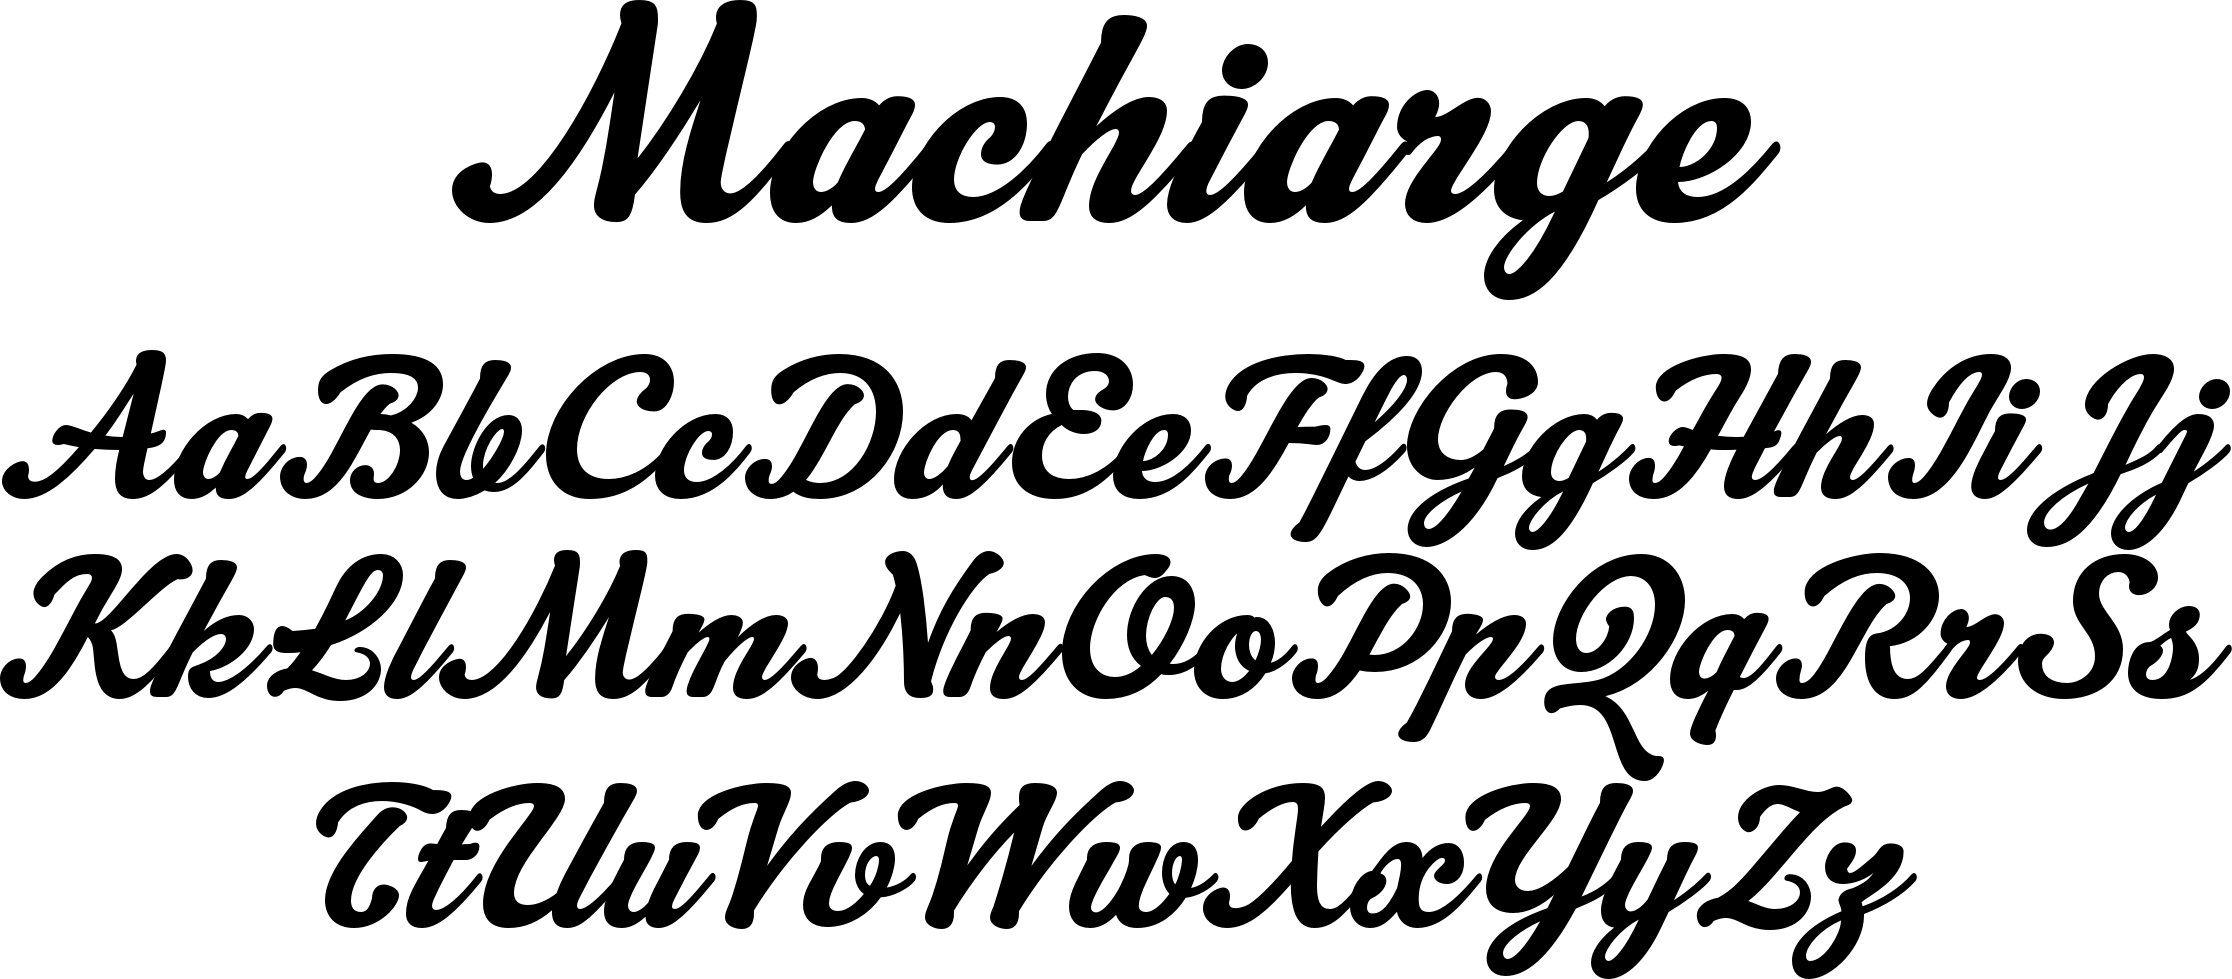 Machiarge font | New Project (BZ) | Fonts, Typography, Calligraphy